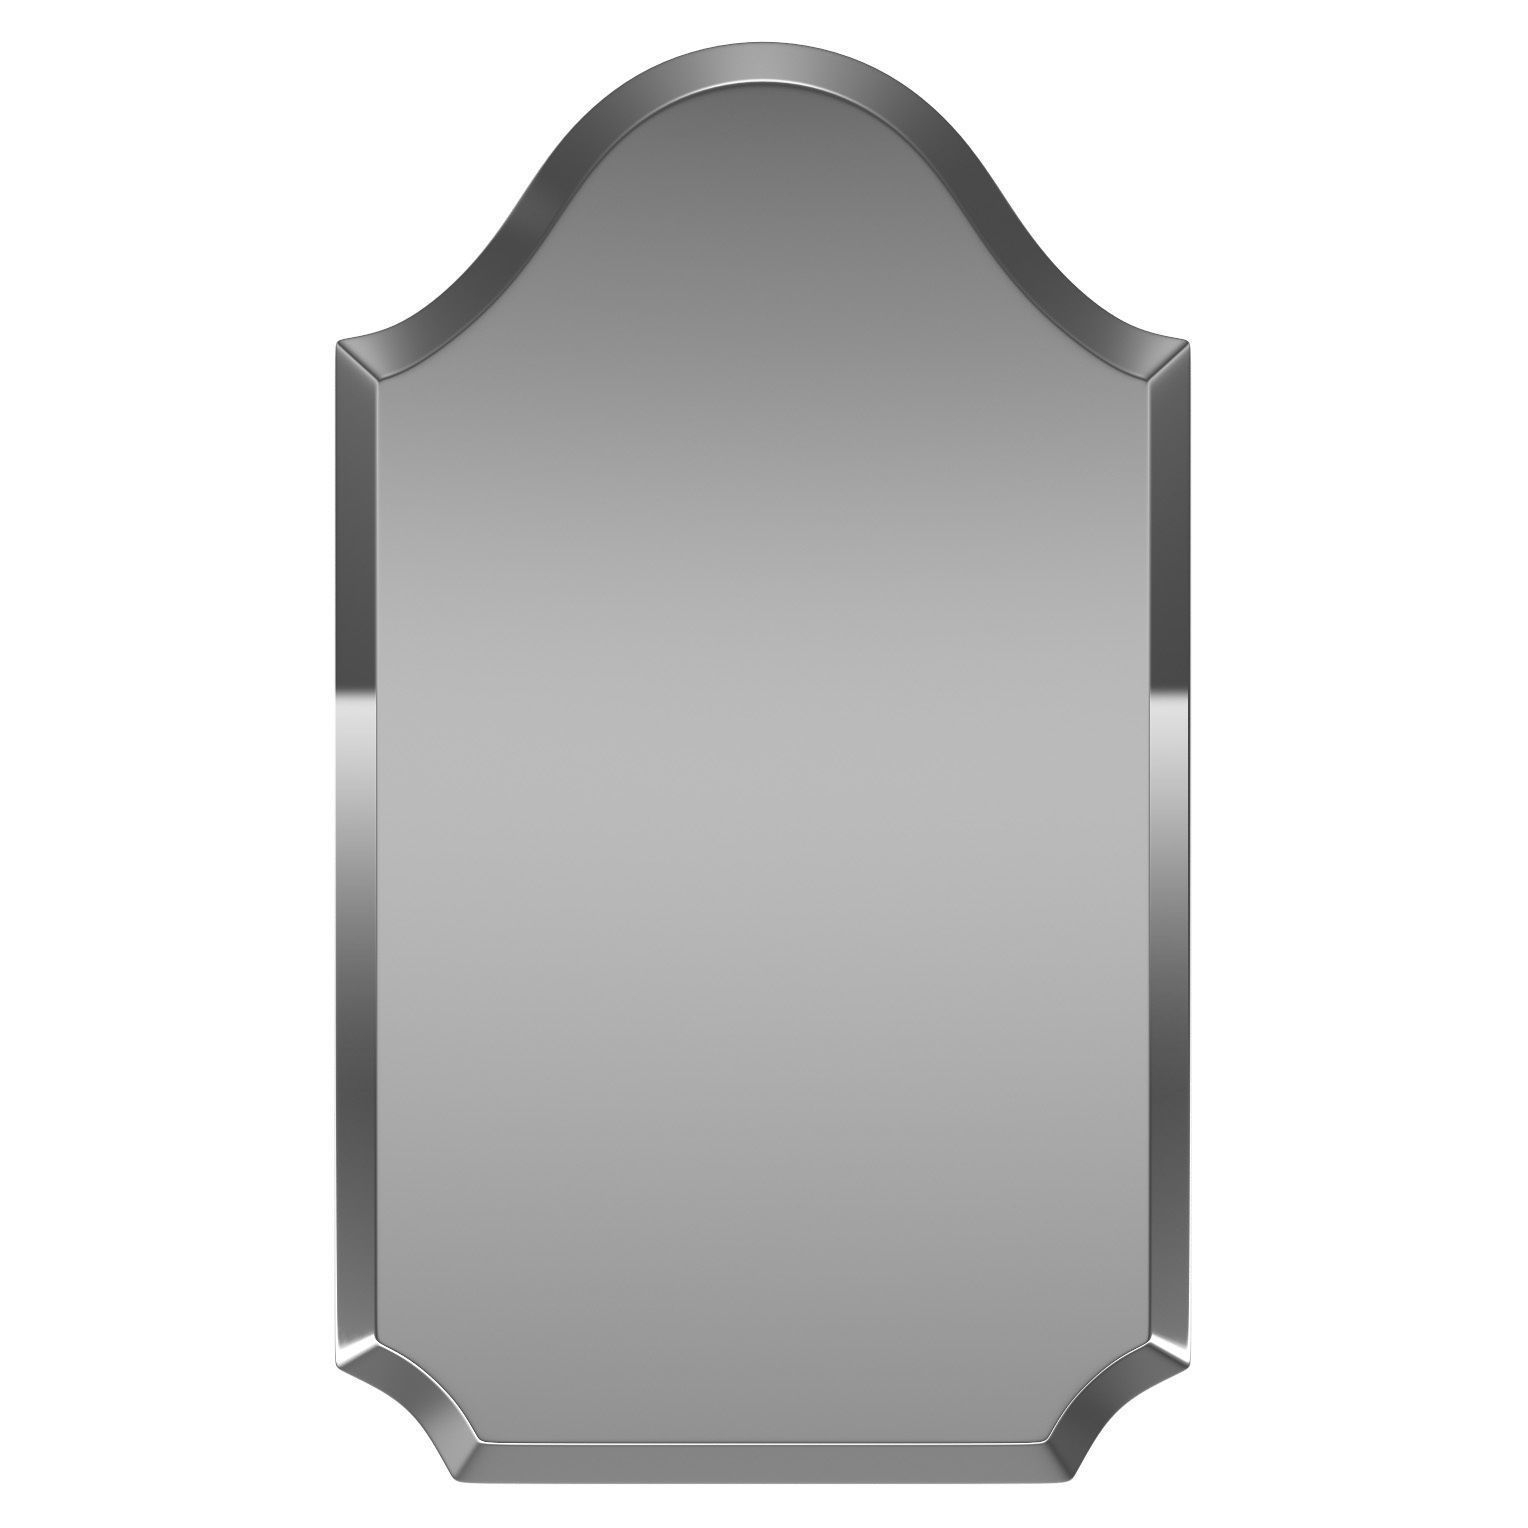 Dariel Tall Arched Scalloped Wall Mirror Wrlo6854 | 3D Model Throughout Dariel Tall Arched Scalloped Wall Mirrors (Photo 4 of 20)